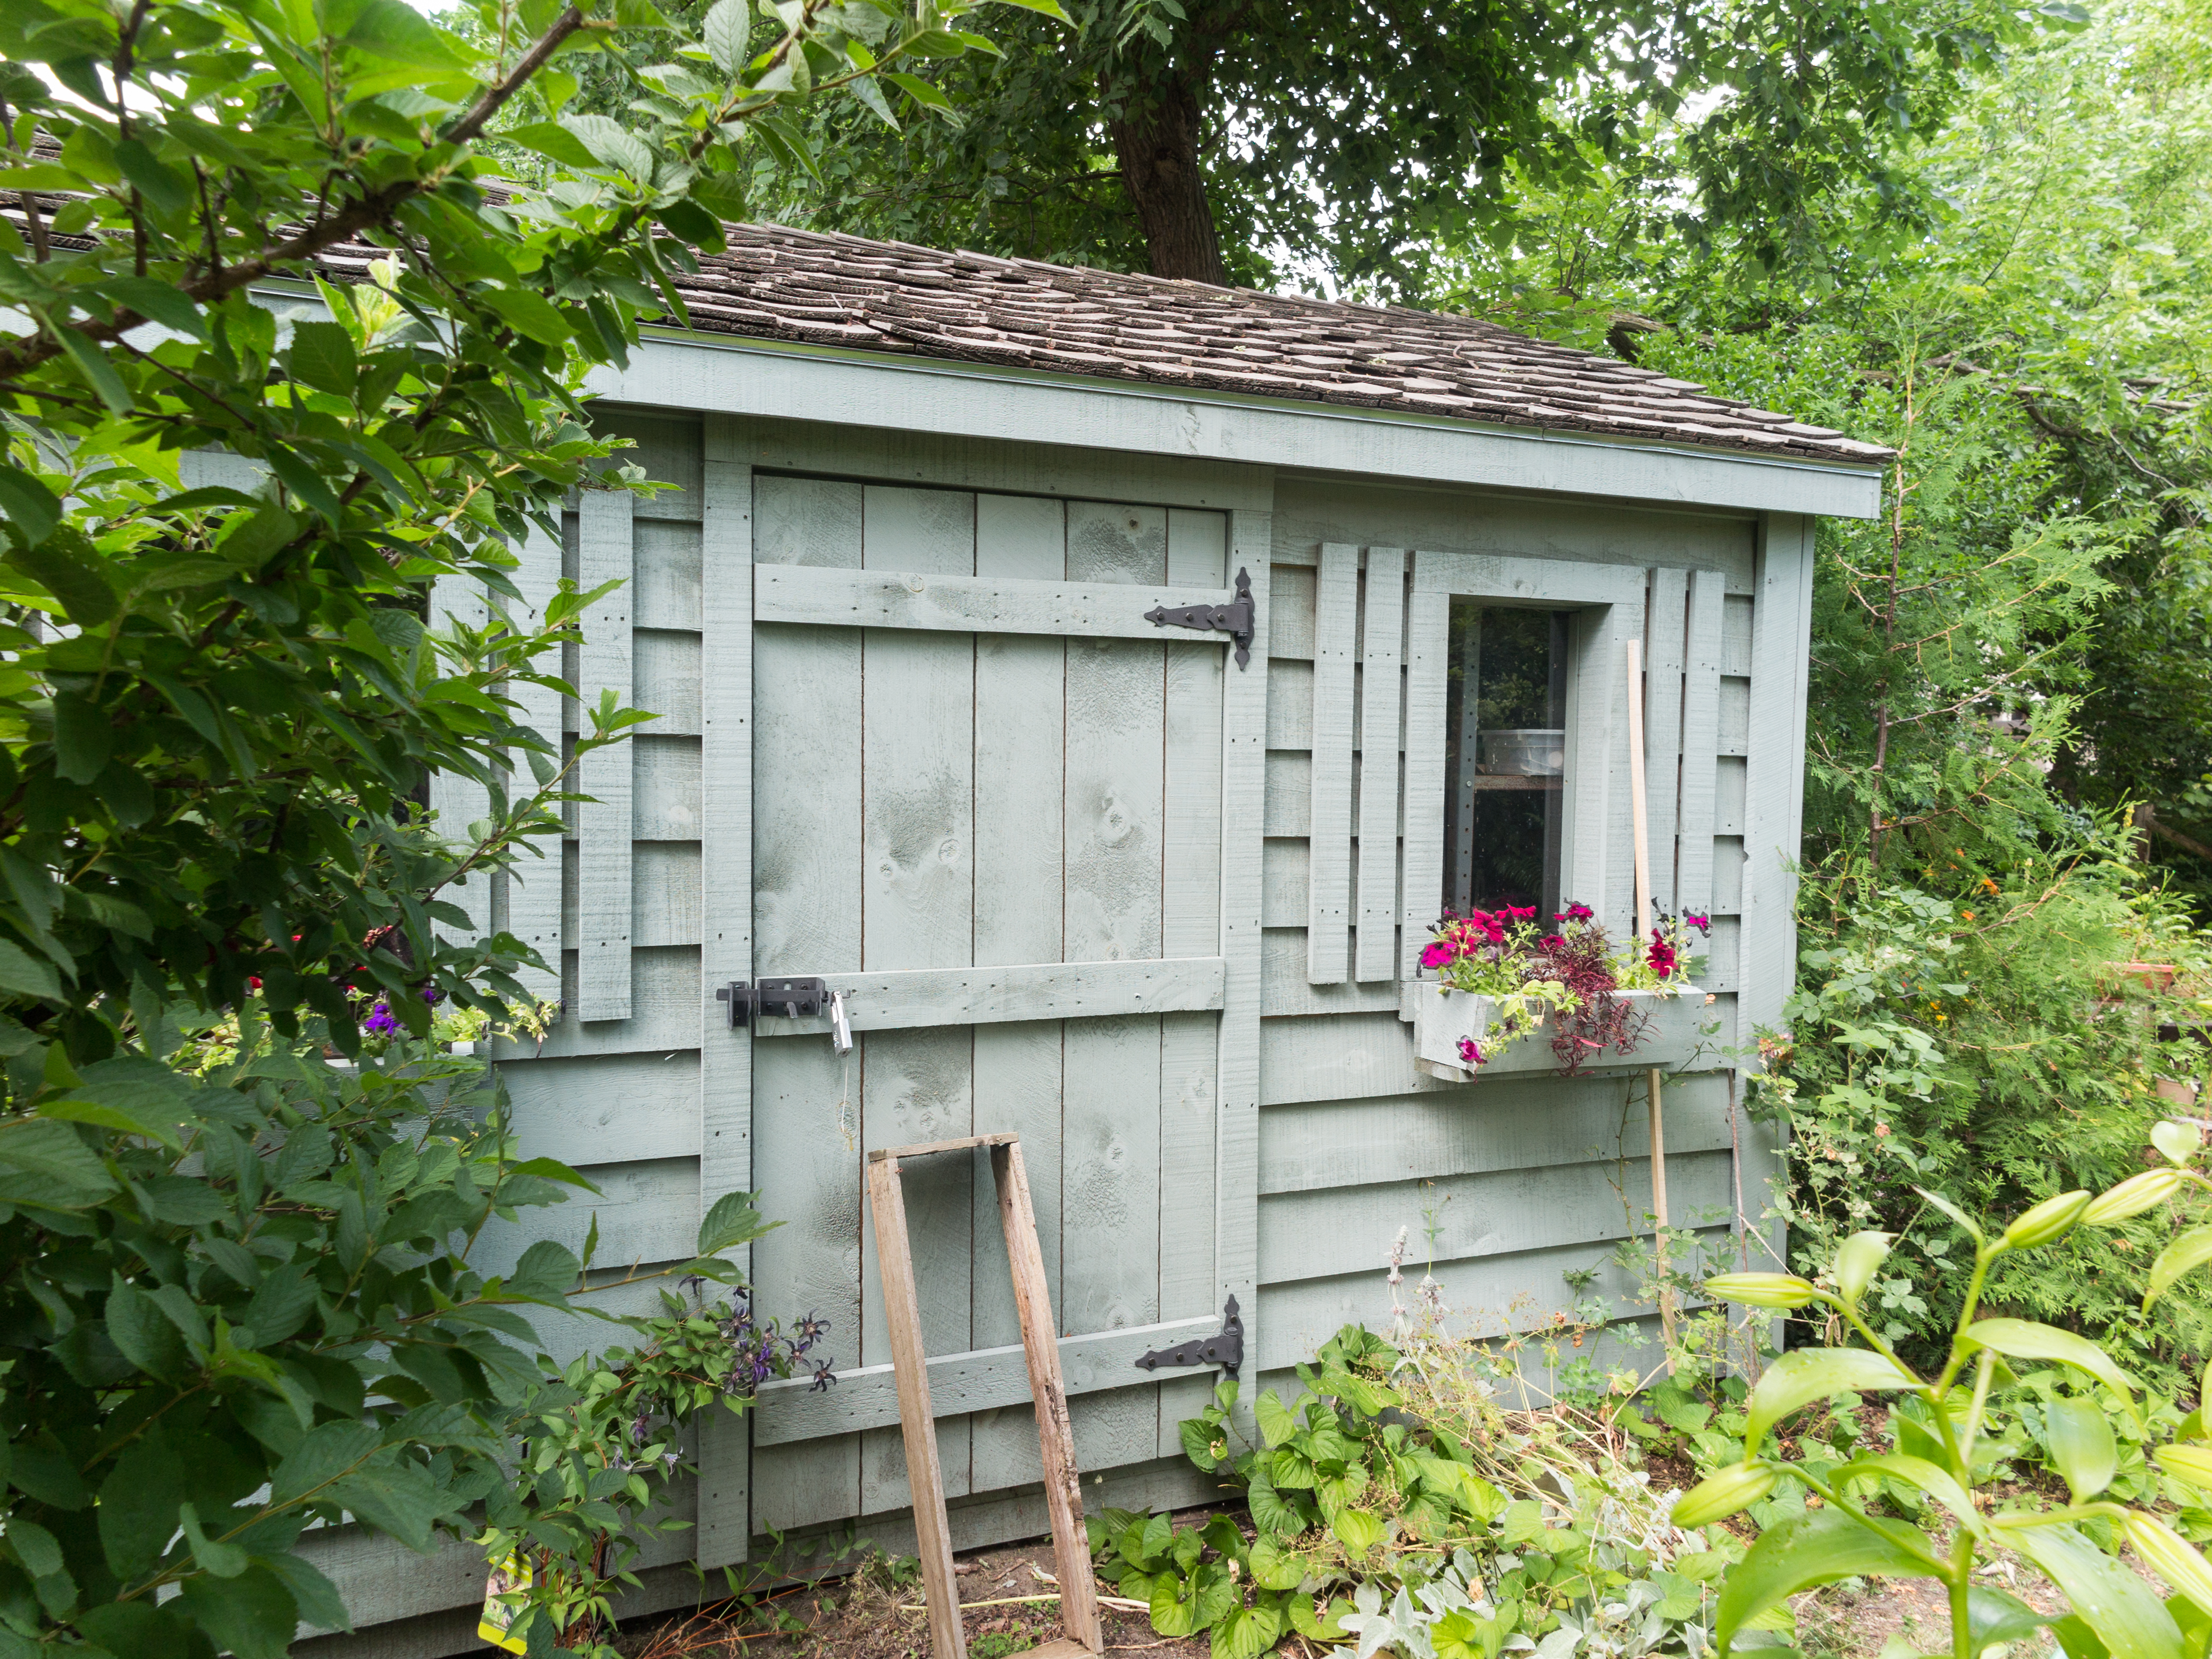 Visit Taverham Nursery Centre for your Sheds Costessey